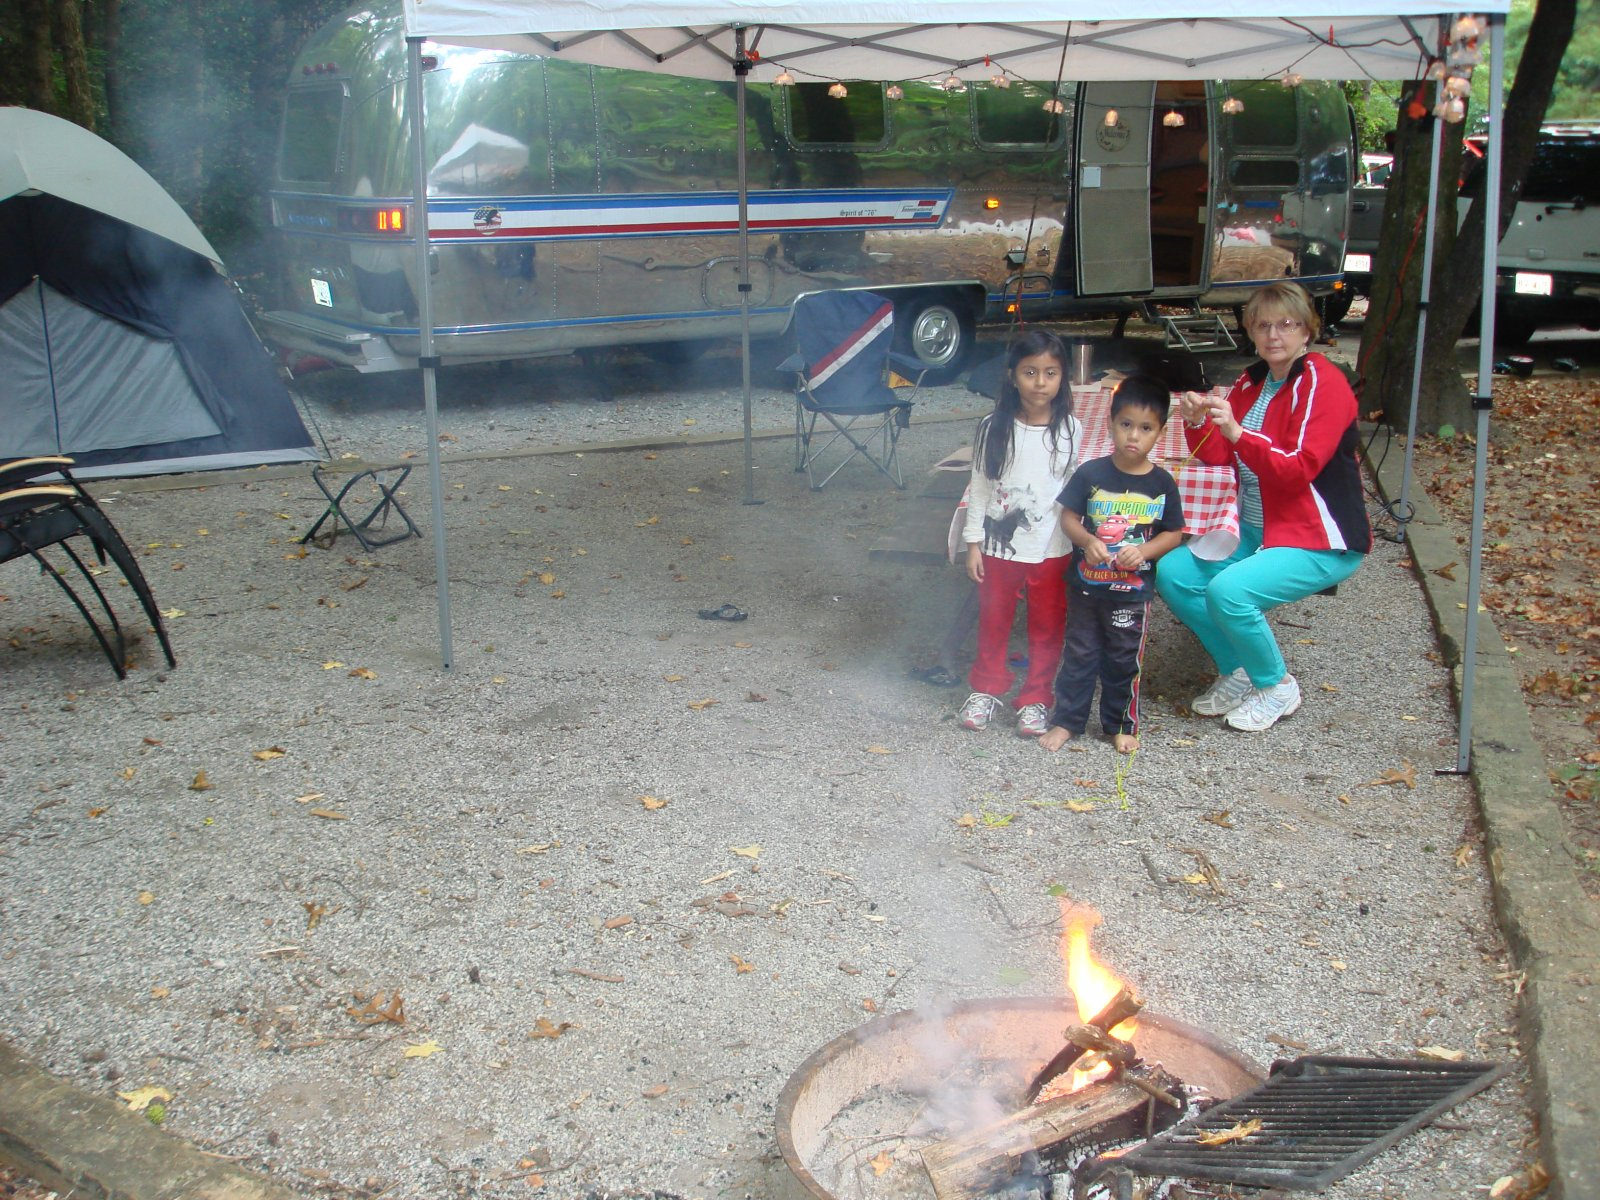 Click image for larger version  Name:campfire 004.jpg Views:96 Size:492.1 KB ID:141094